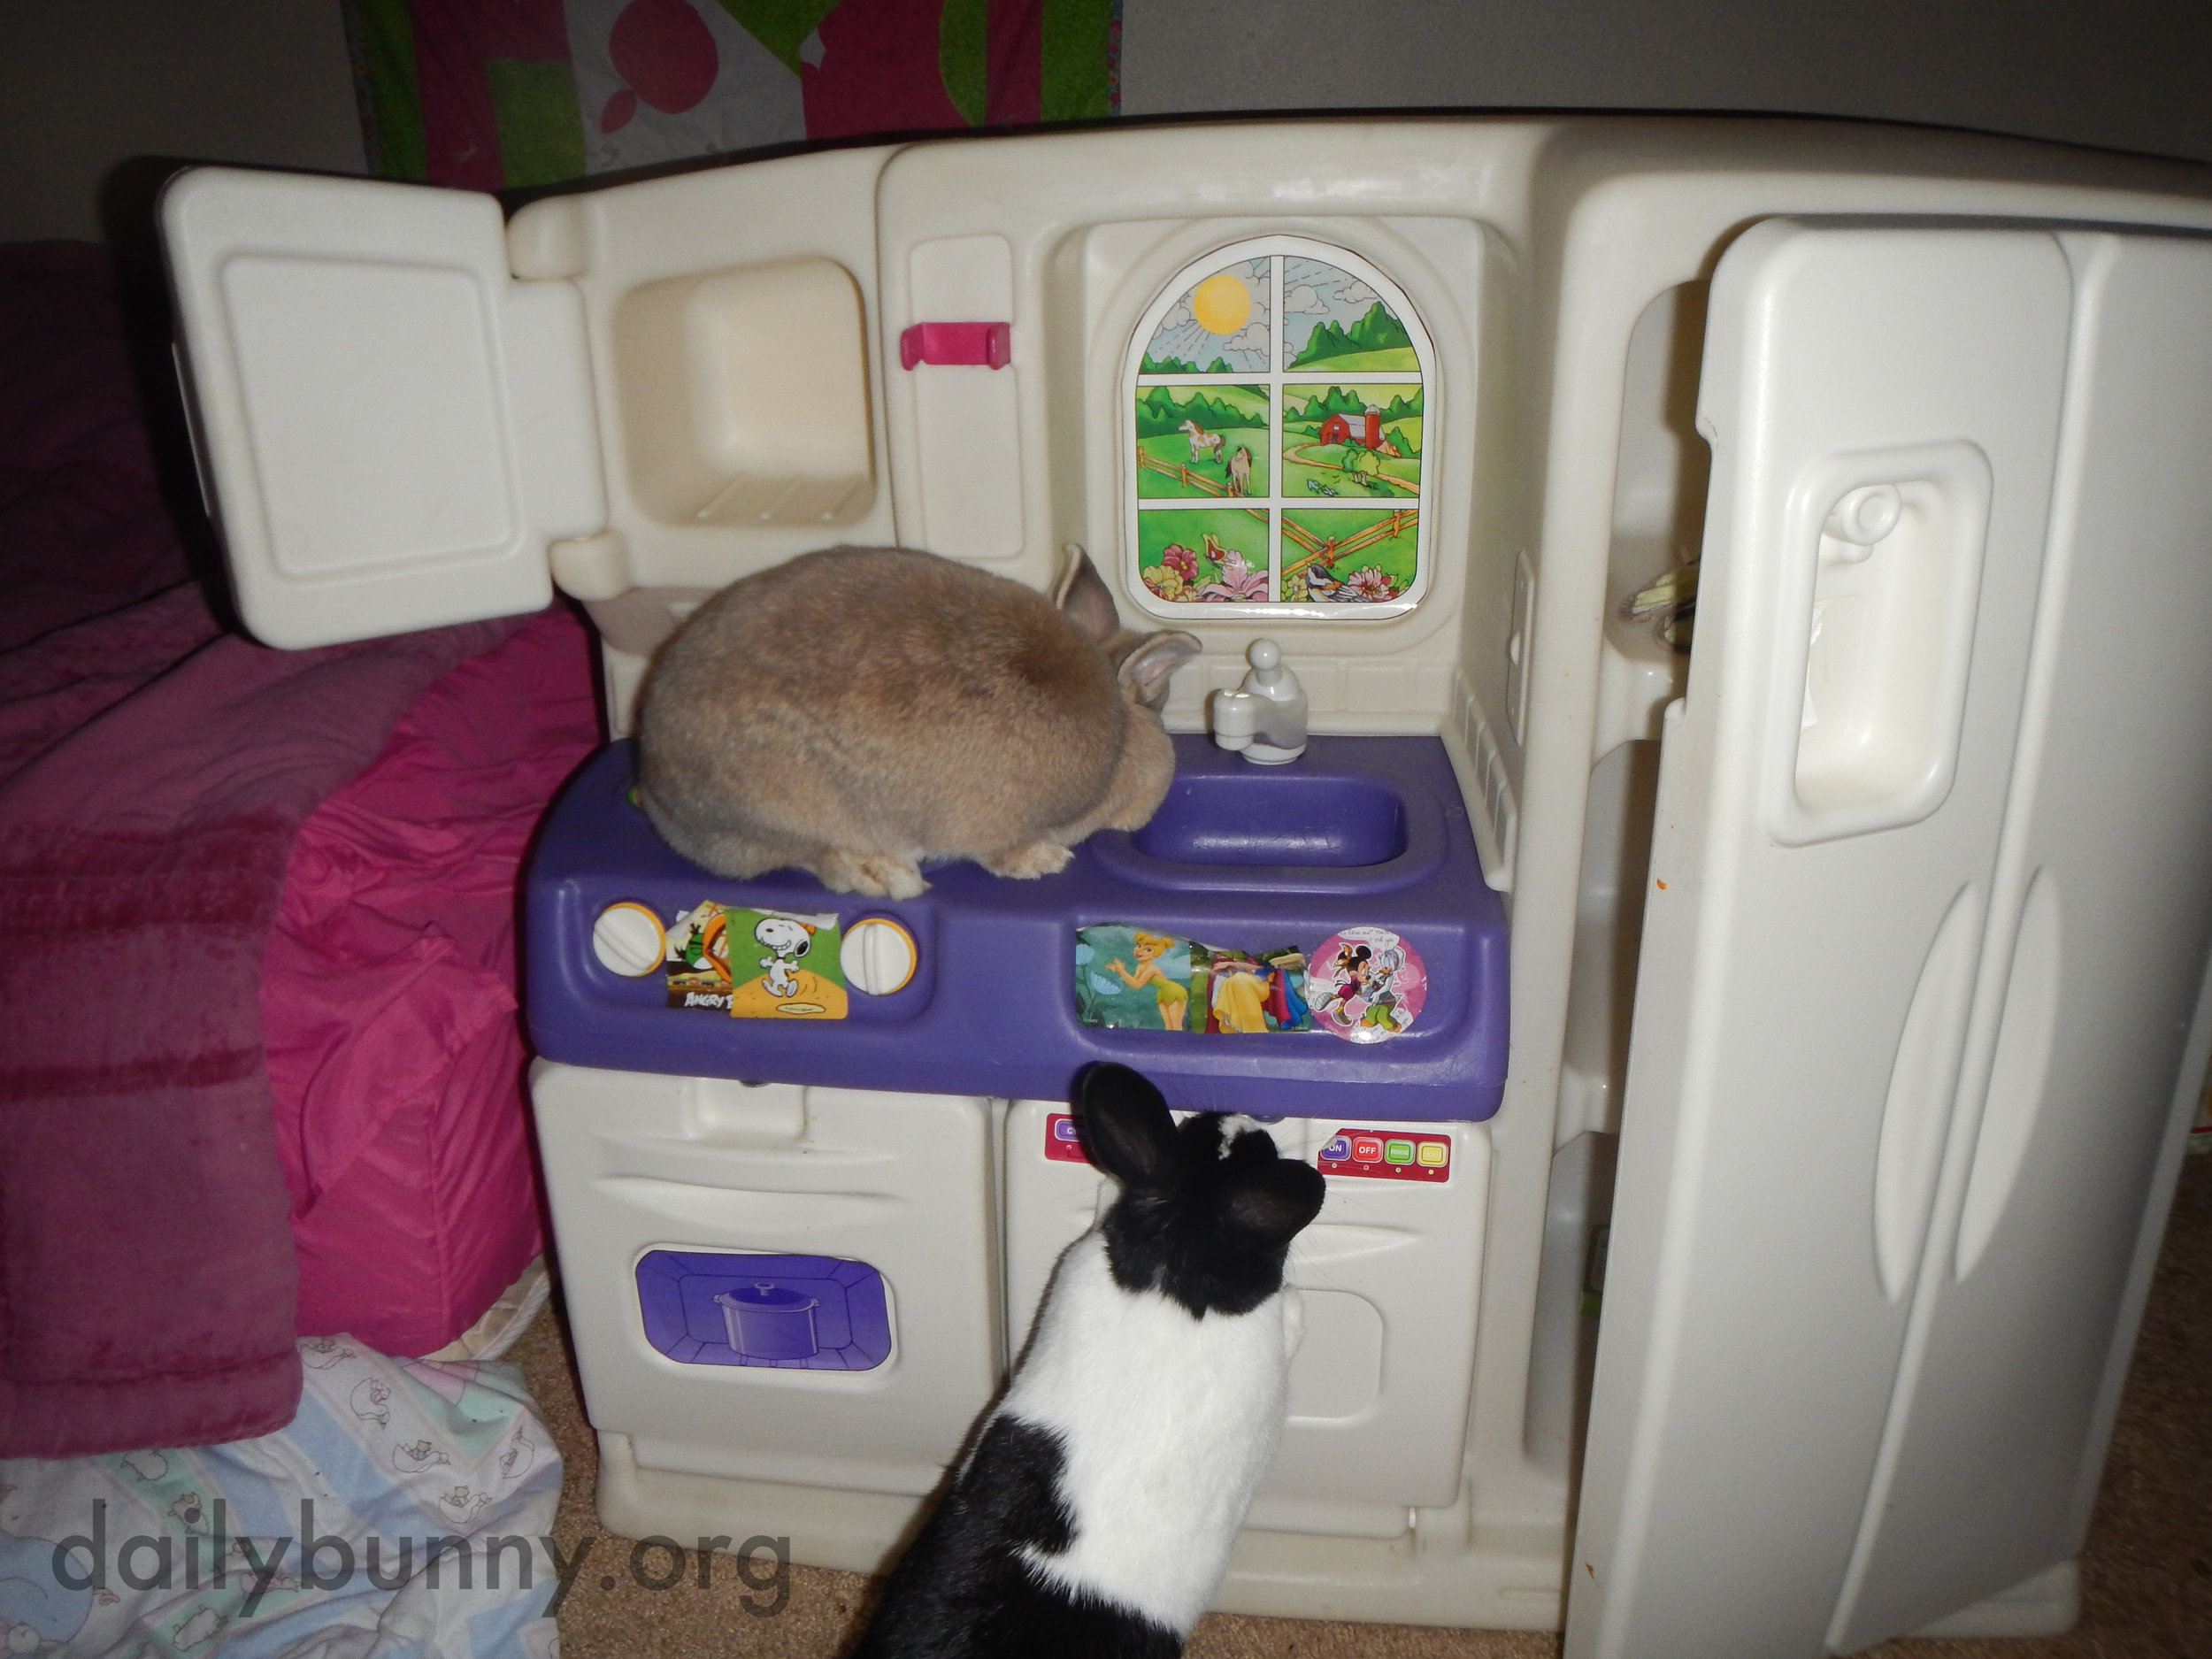 Bunnies Explore a Kitchen That's a Little More Bunny-Sized 1